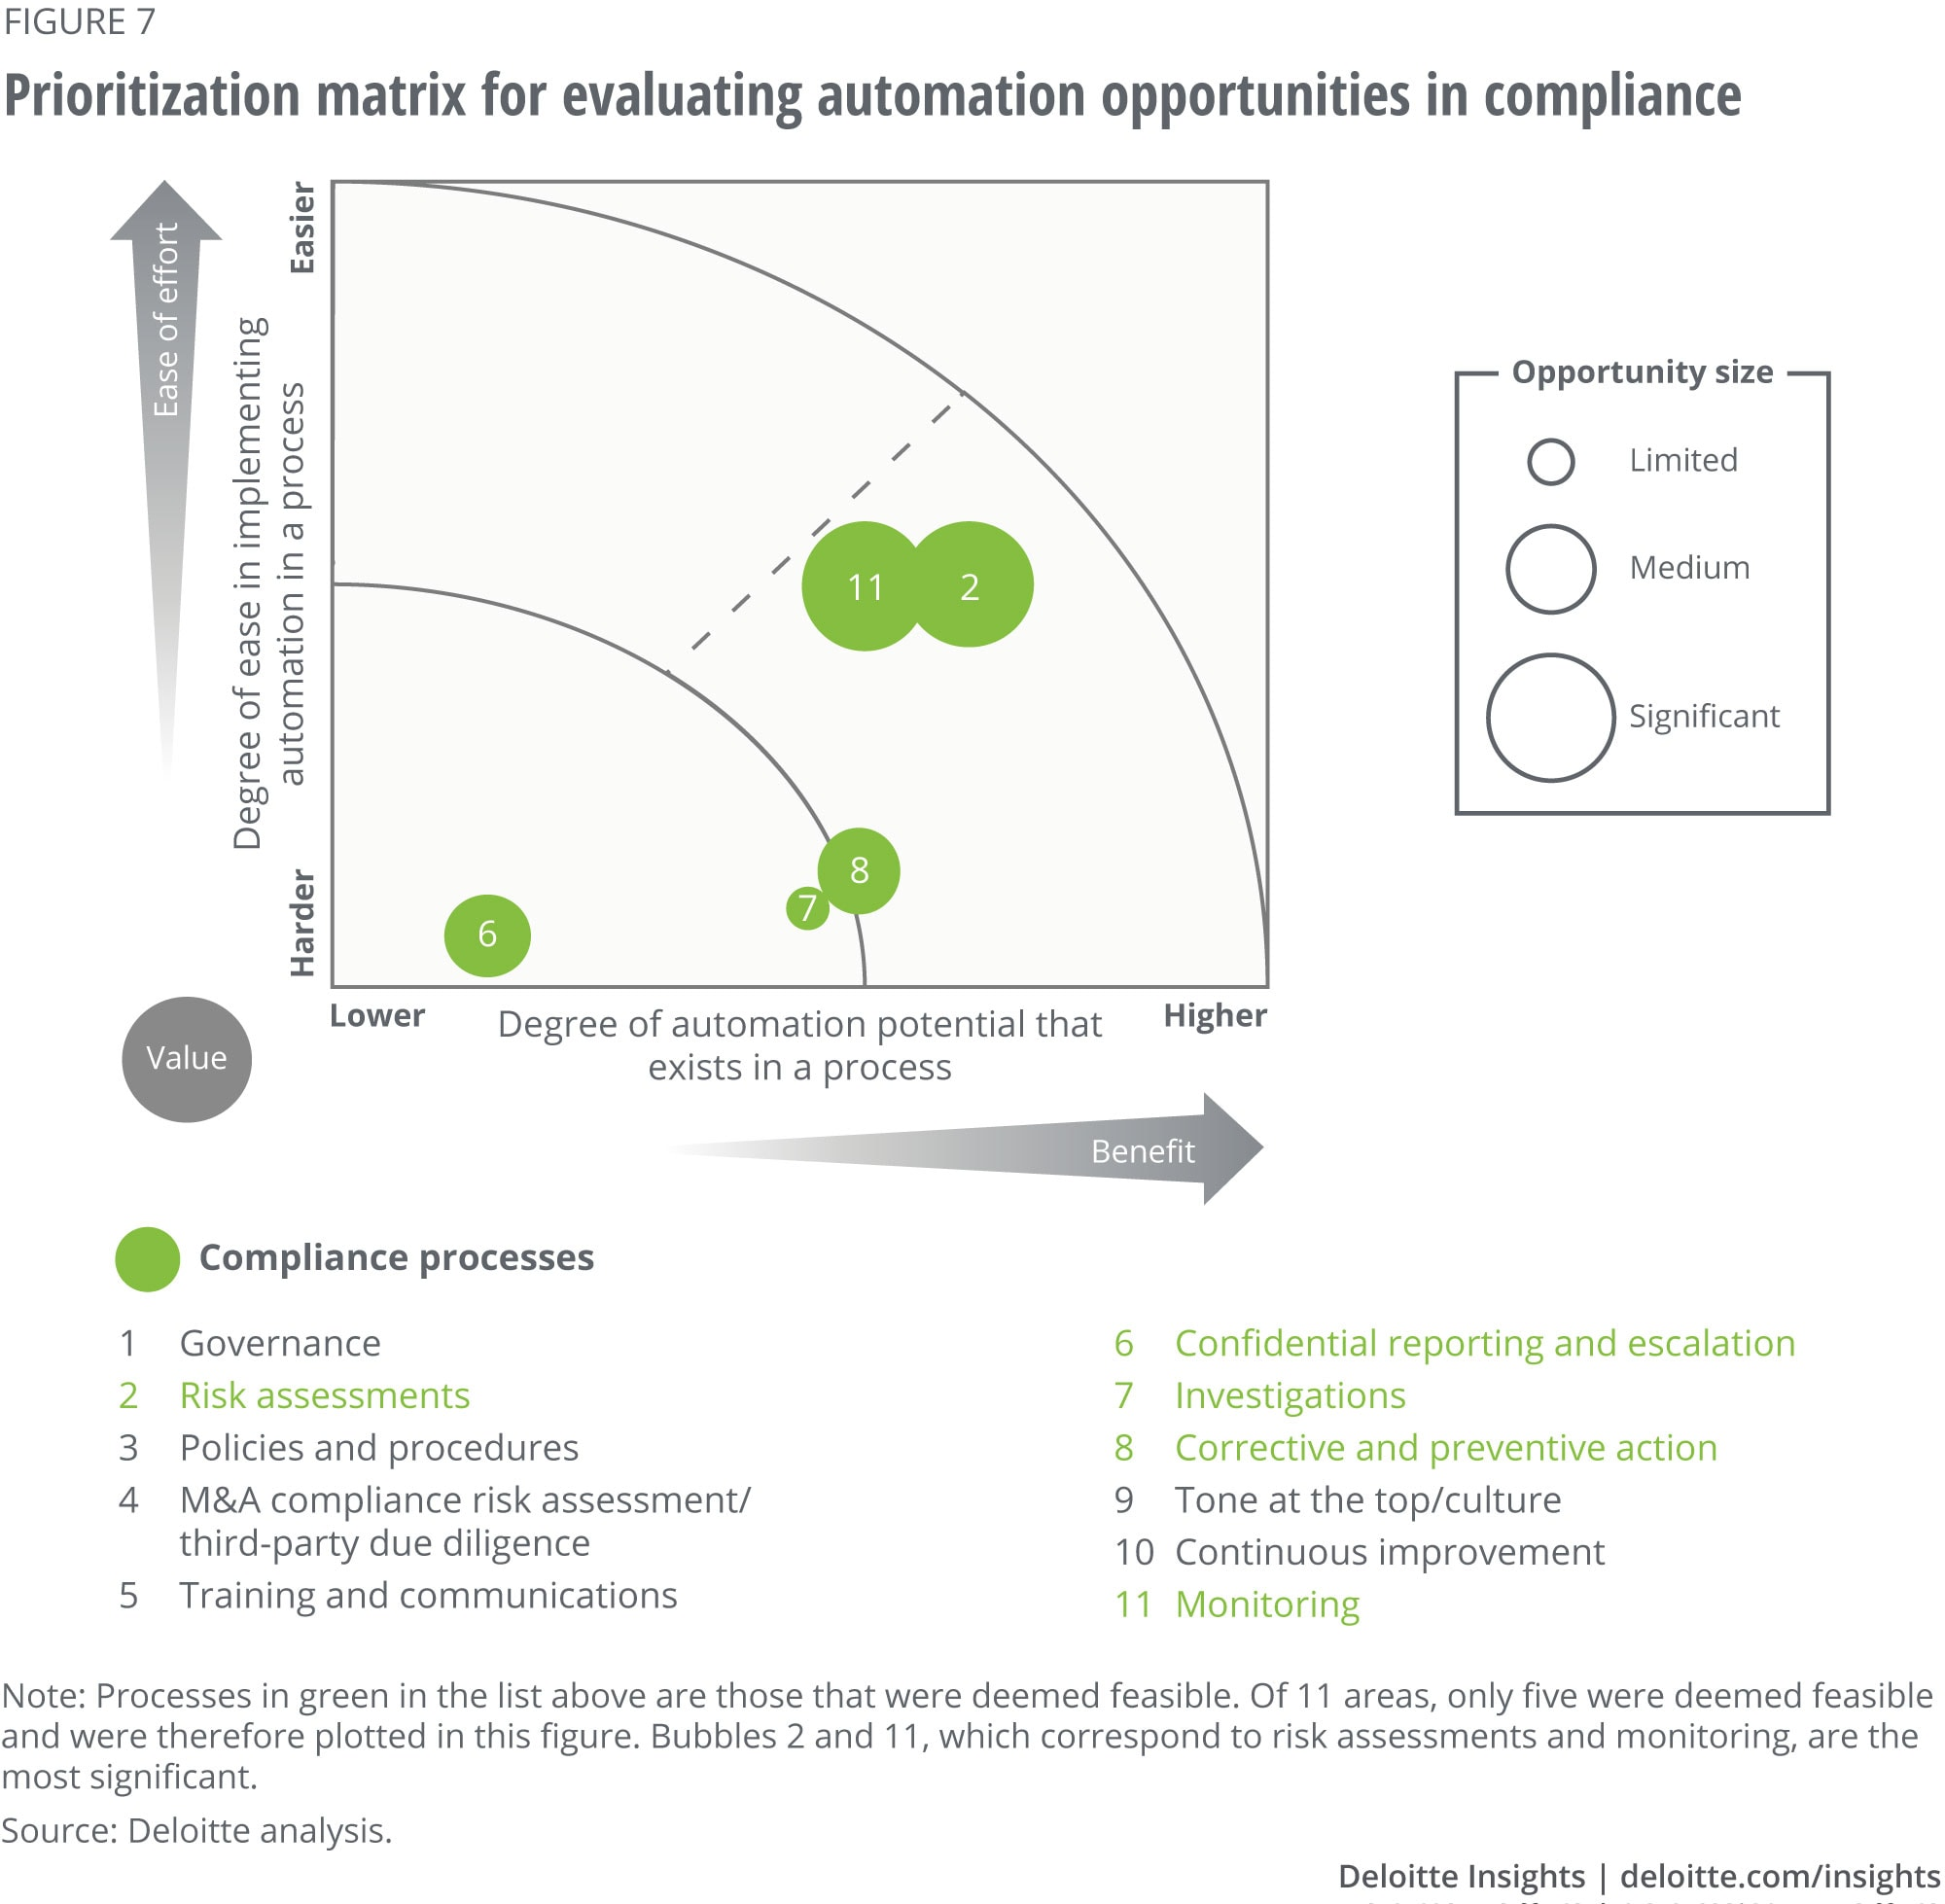 Prioritization matrix for evaluating automation opportunities in compliance